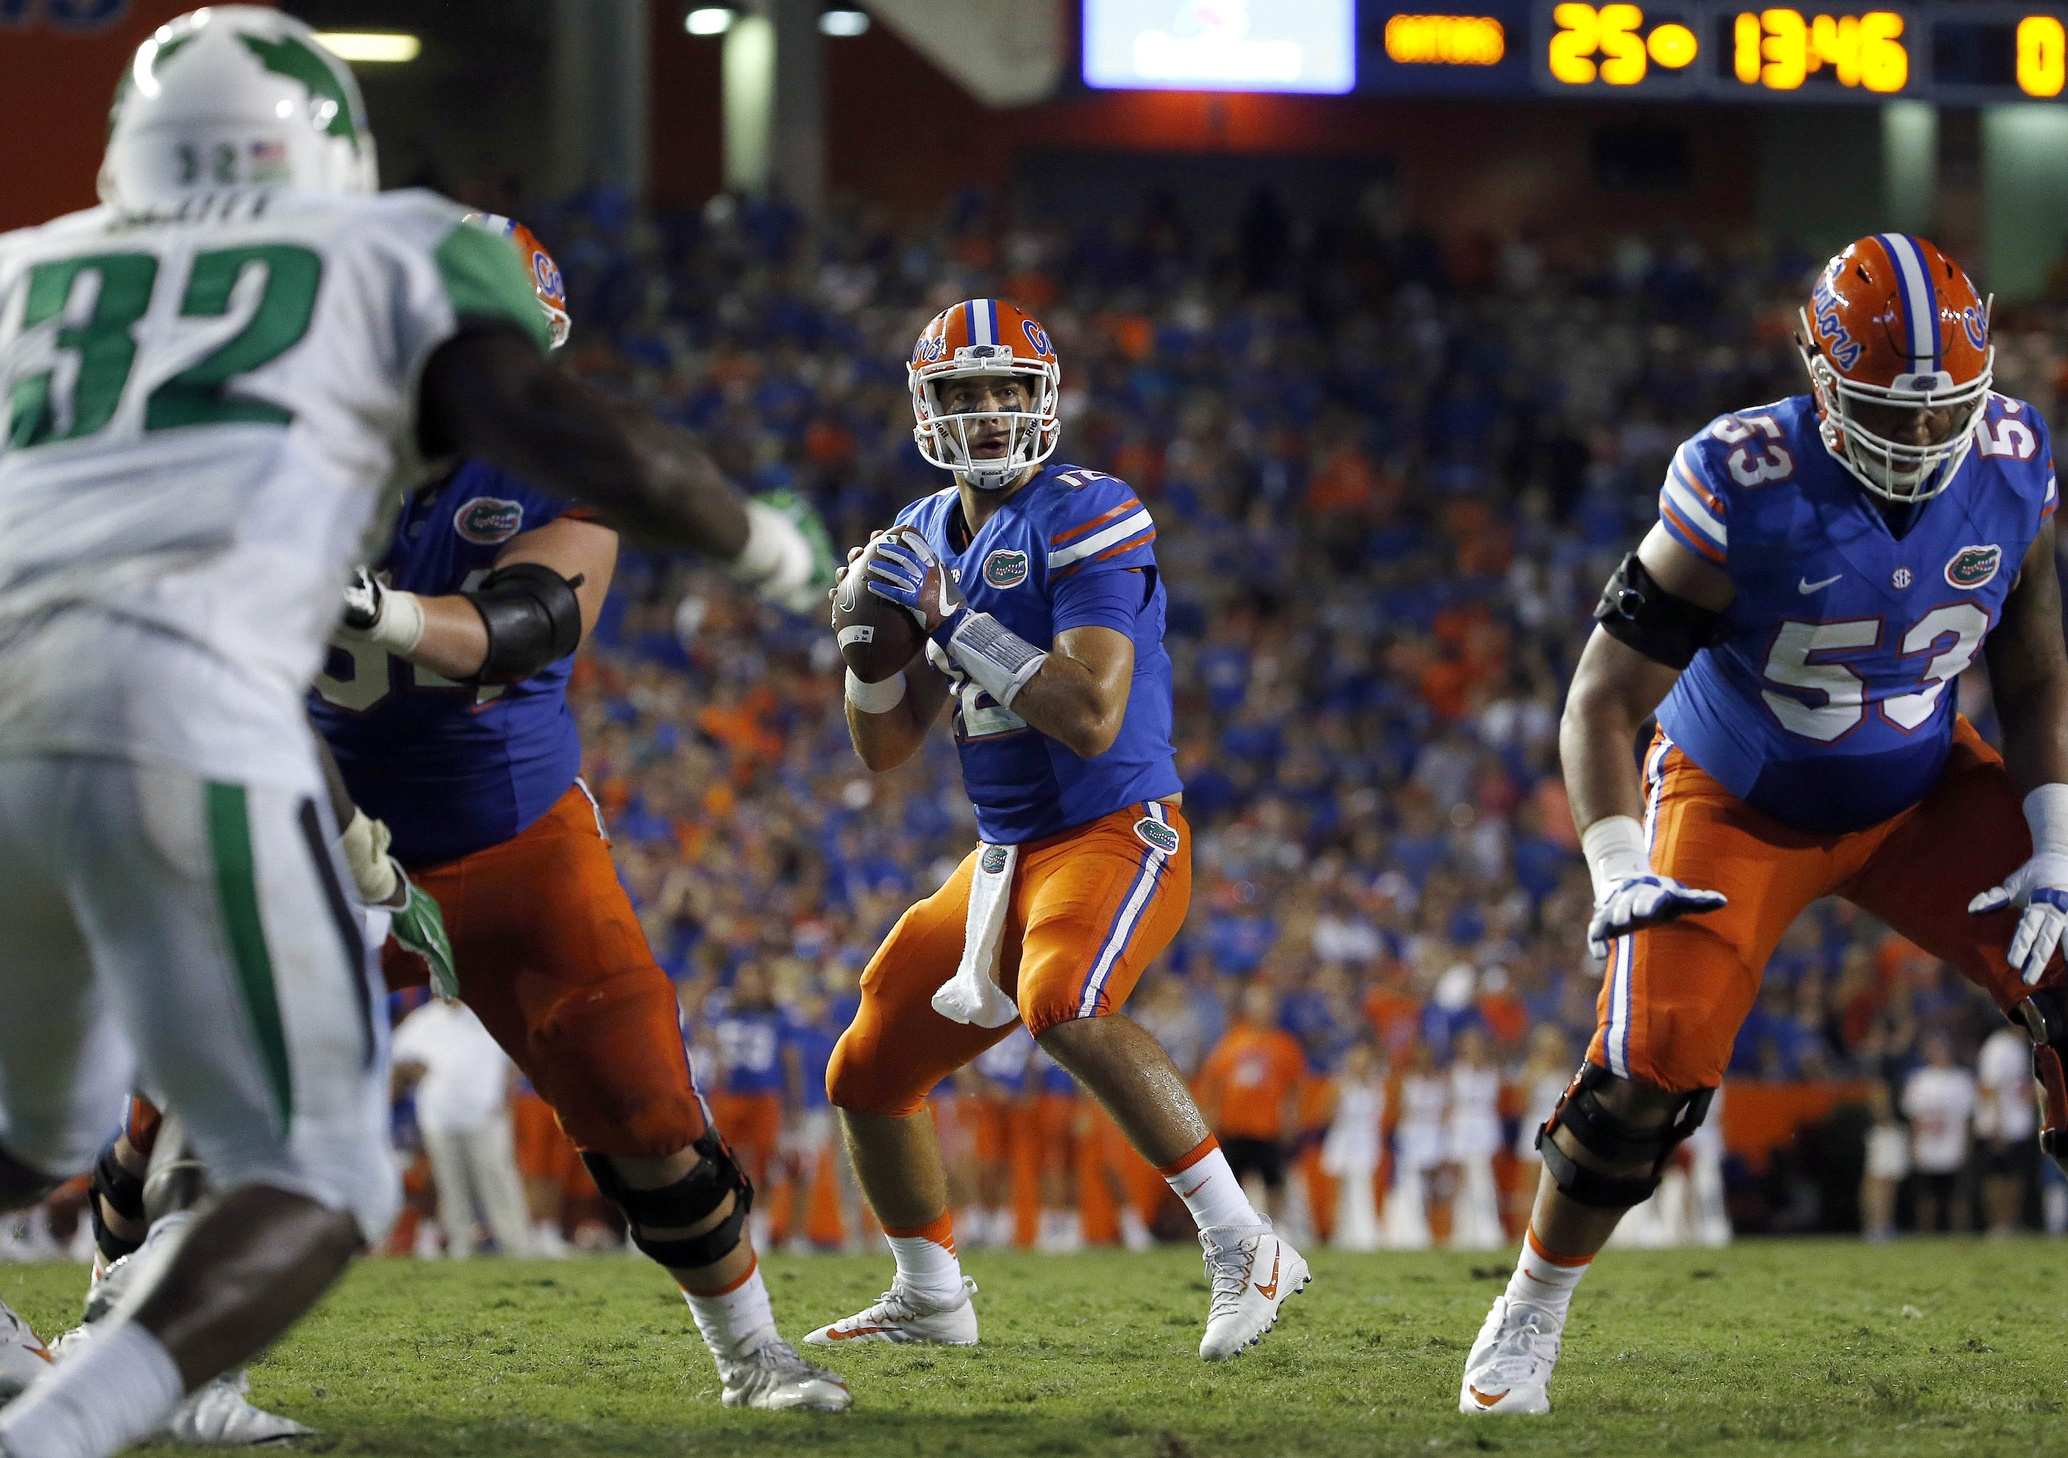 Sep 17, 2016; Gainesville, FL, USA; Florida Gators quarterback Austin Appleby (12) prepares to throw the ball against the North Texas Mean Green during the second half at Ben Hill Griffin Stadium. Florida Gators defeated the North Texas Mean Green 32-0. Mandatory Credit: Kim Klement-USA TODAY Sports